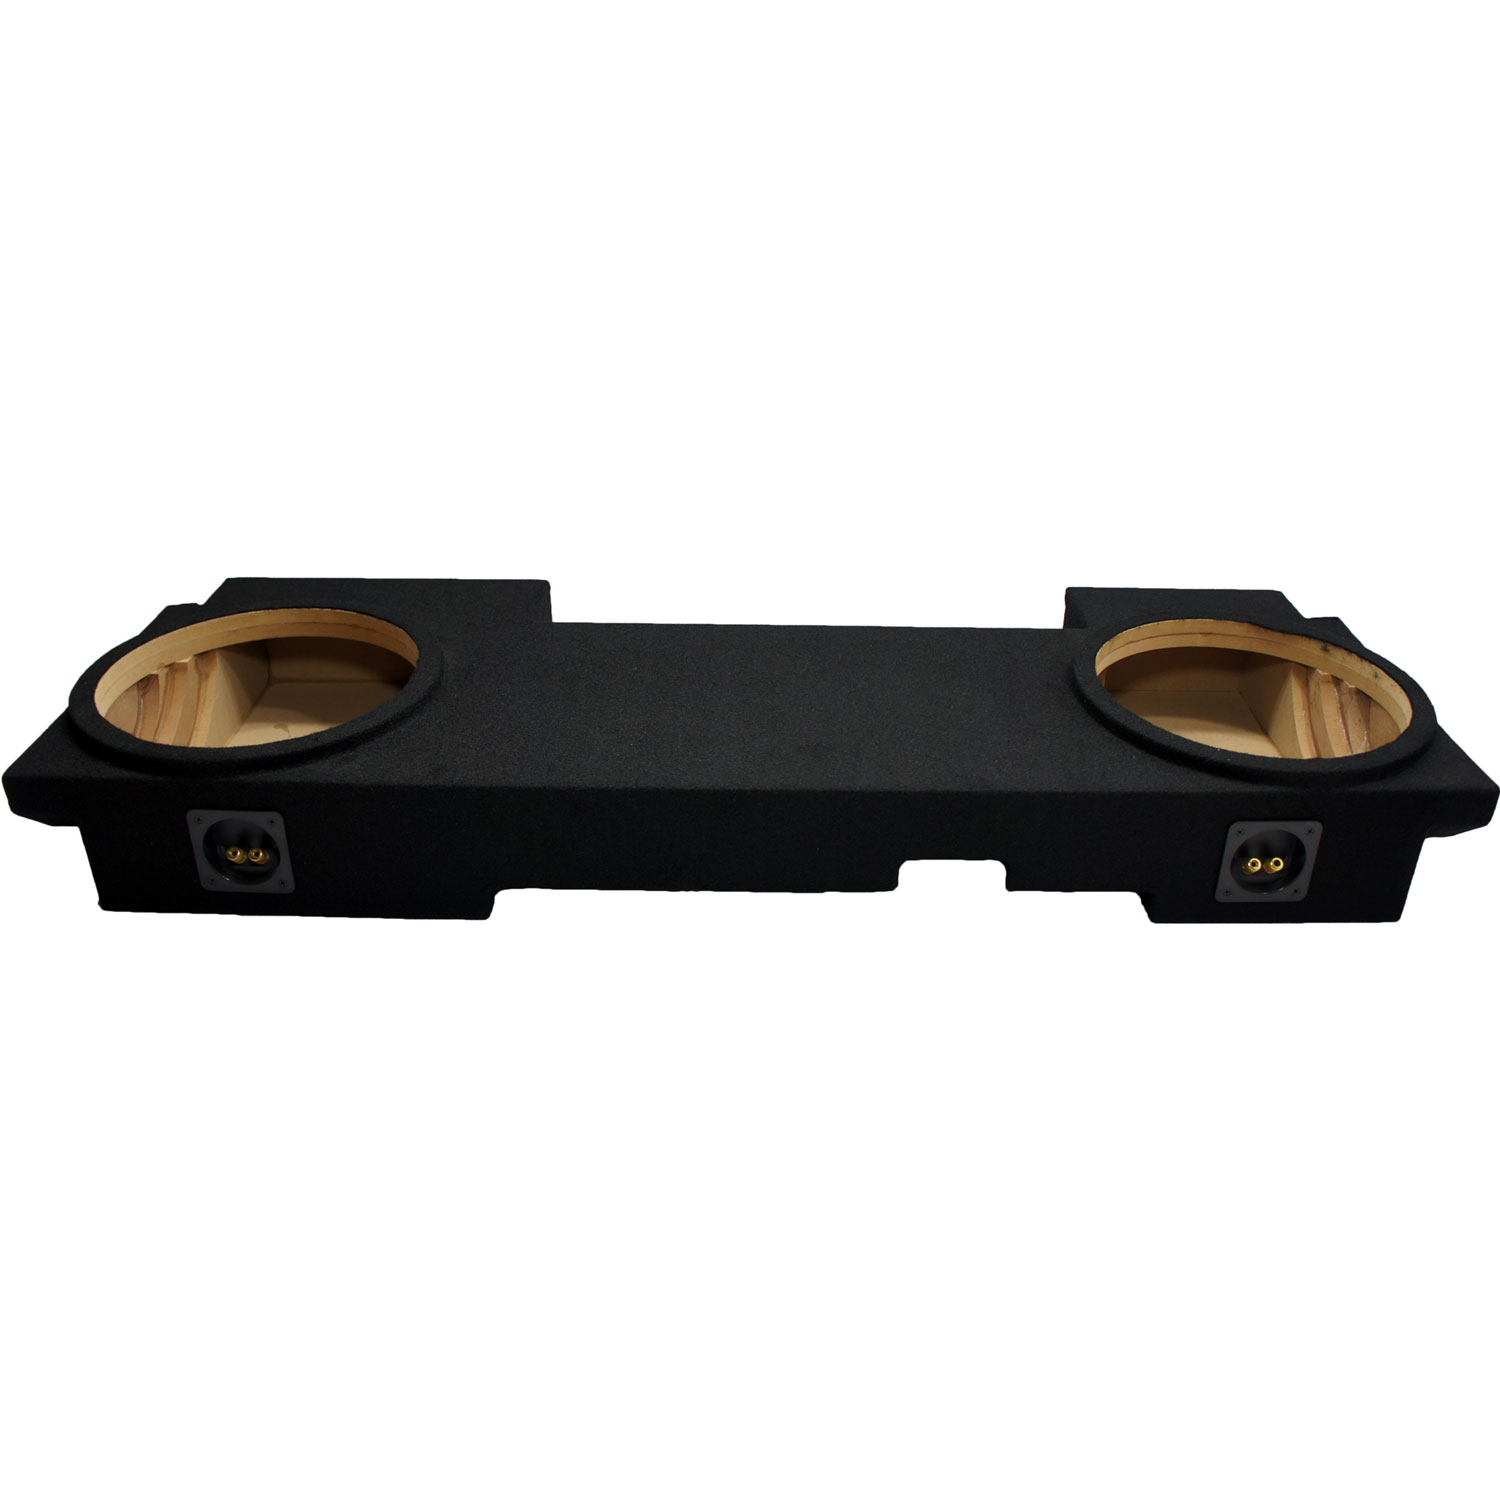 Ported Subwoofer and Speaker Boxes and Enclosures